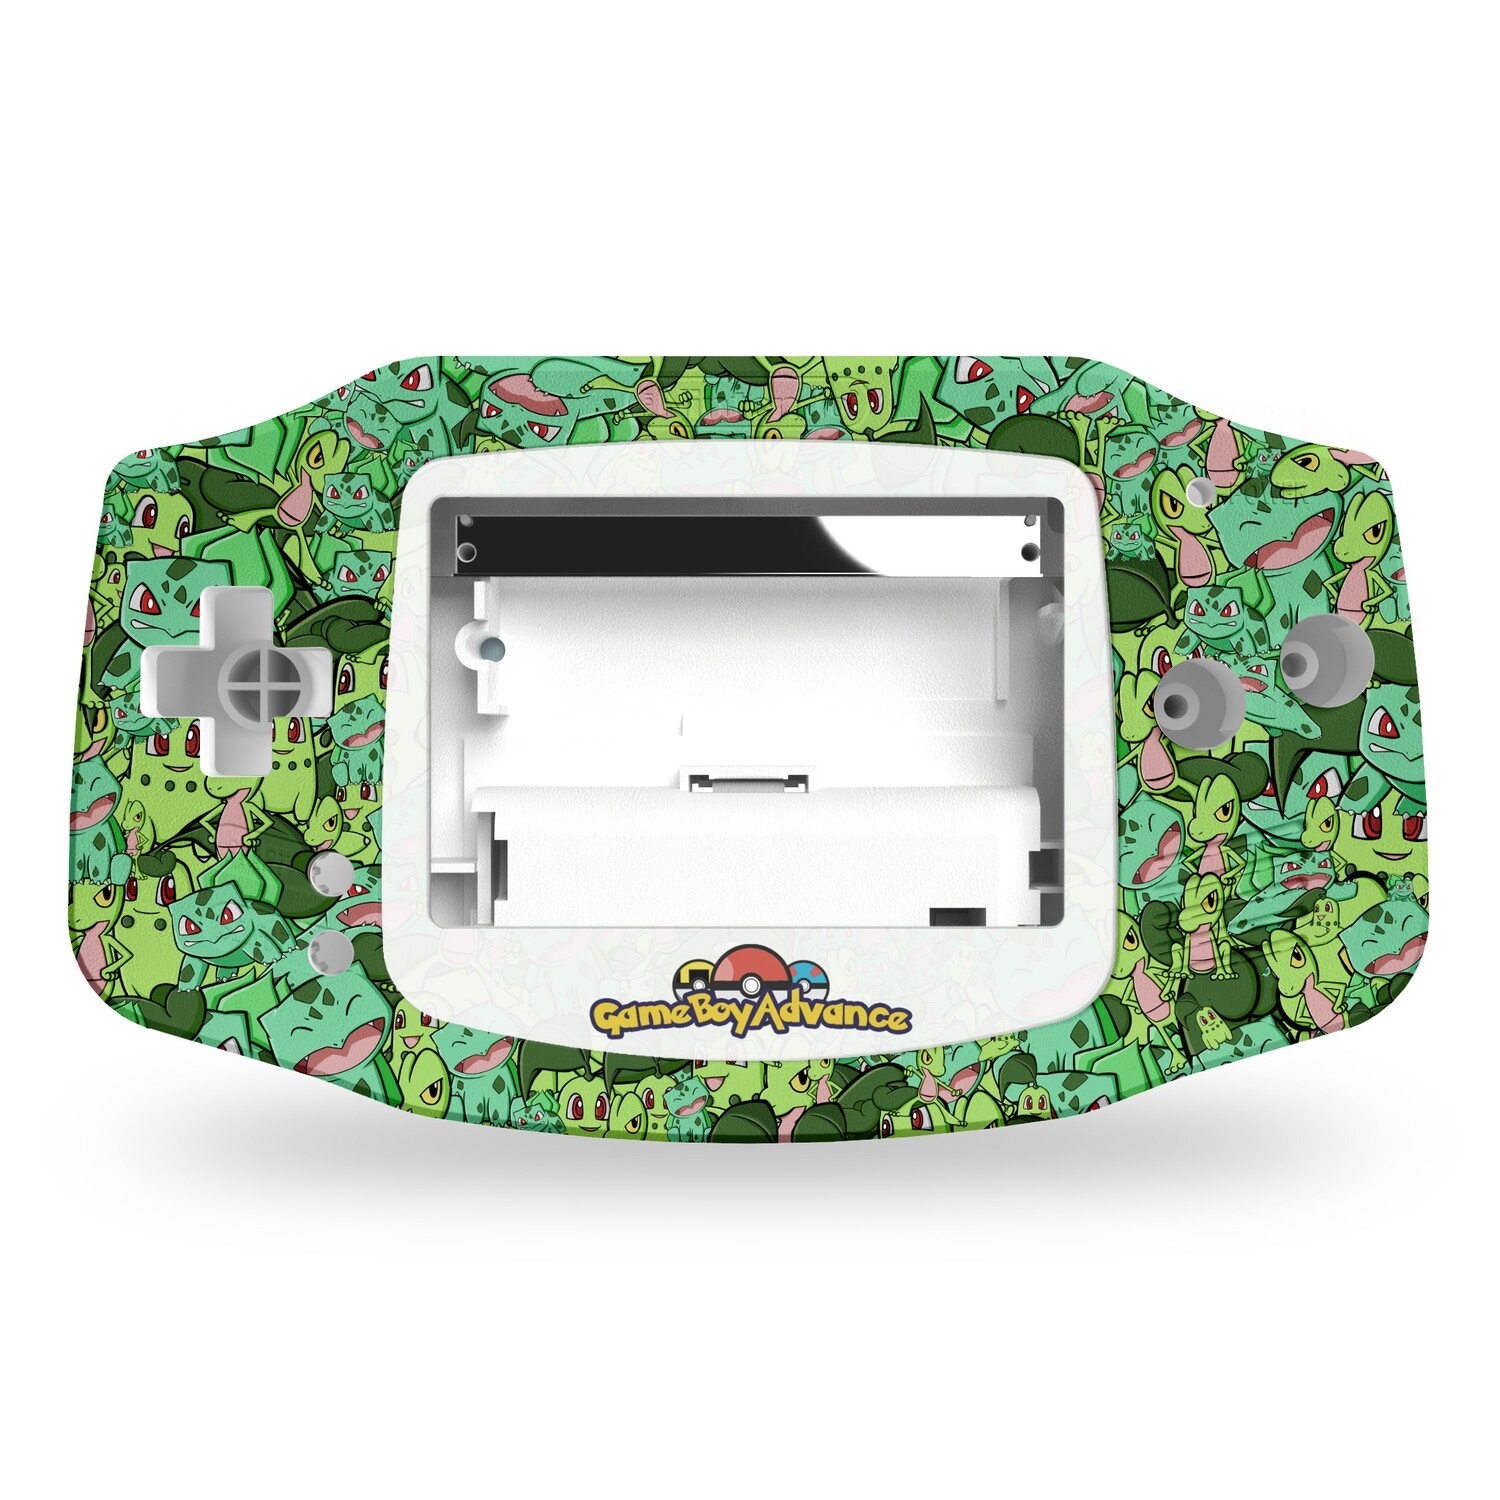 Game Boy Advance Printed Shell (Grass Starters)